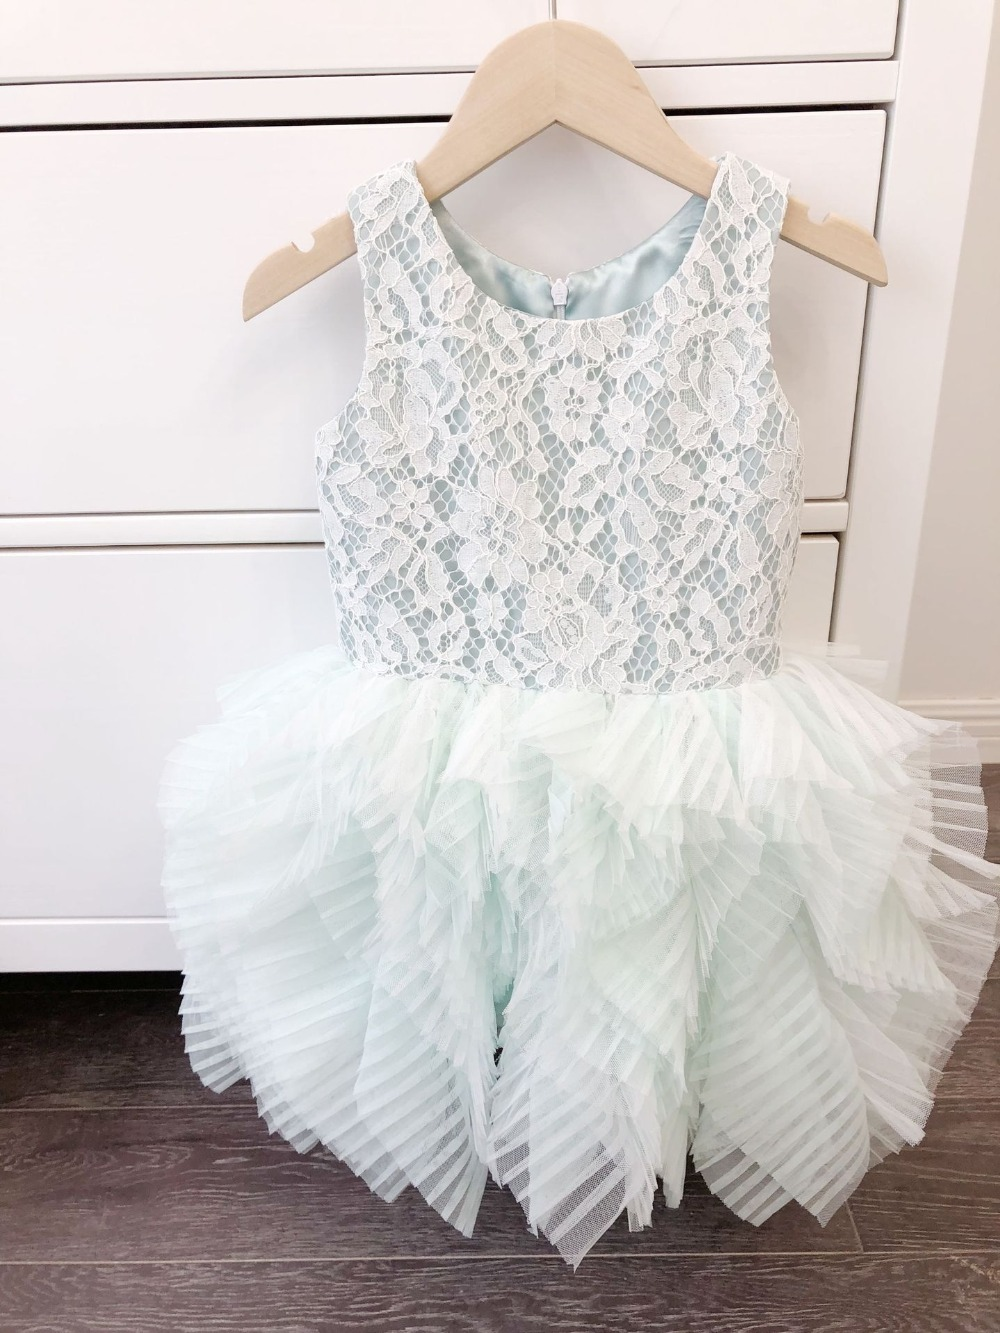 kids dresses for girls baby clothes girl lace flower summer princess dresses high quality tutu dress girls party dresses lcjmmo red spring summer girl lace dress 2018 kids dresses for girls princess party wedding sleeveless baby girl dress clothes